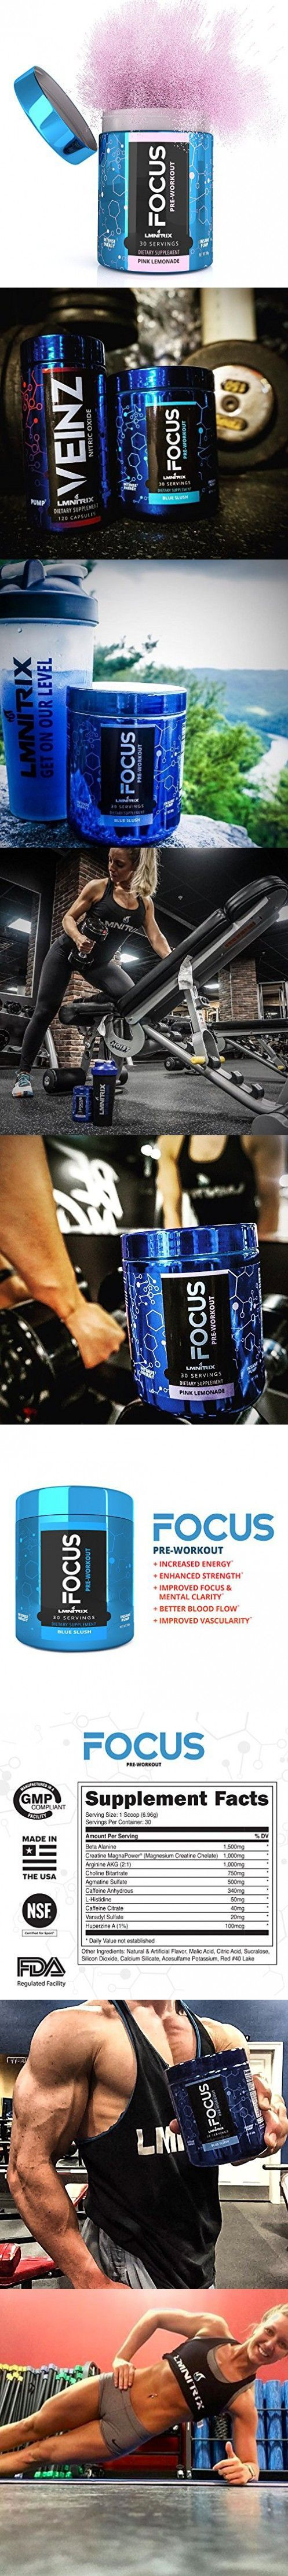 FOCUS ✮ Pre-Workout Supplement ✮ For Men & Women - Guaranteed Results ✮ Best Tasting Powder For Strength, Energy, and Endurance ✮ 30 servings